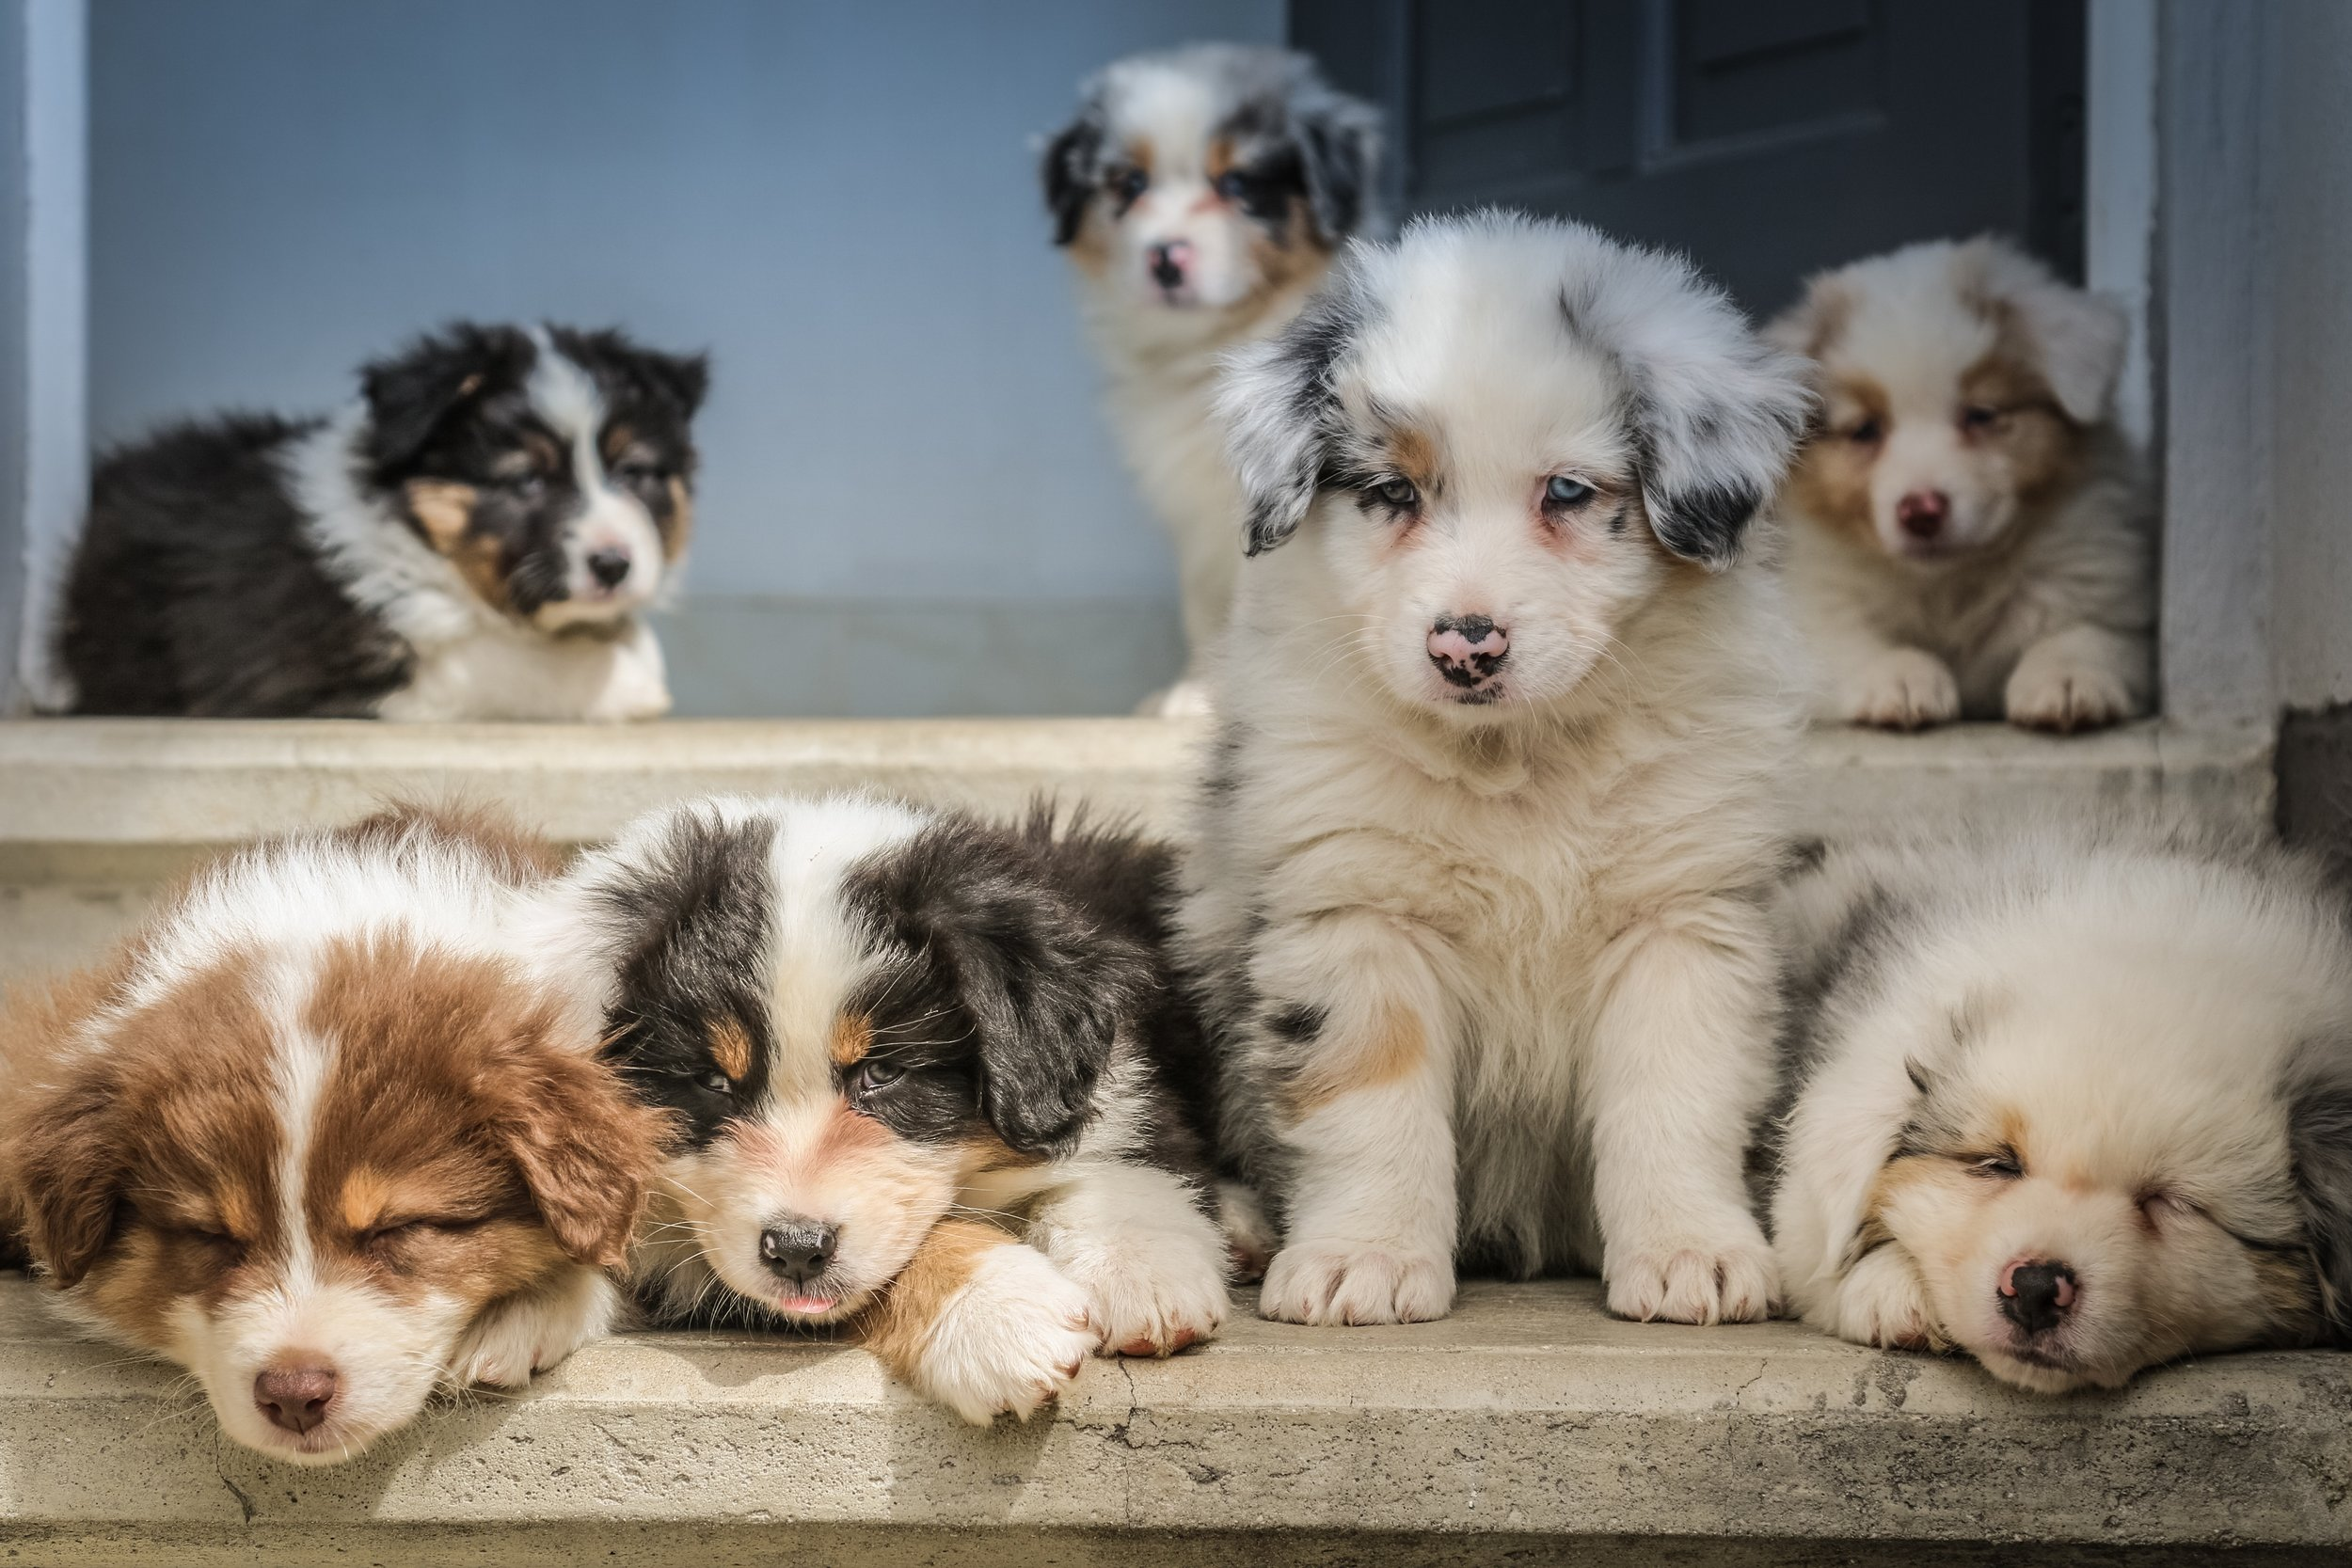 Load of Puppies, groups of puppies, #puppyadoption #puppylover